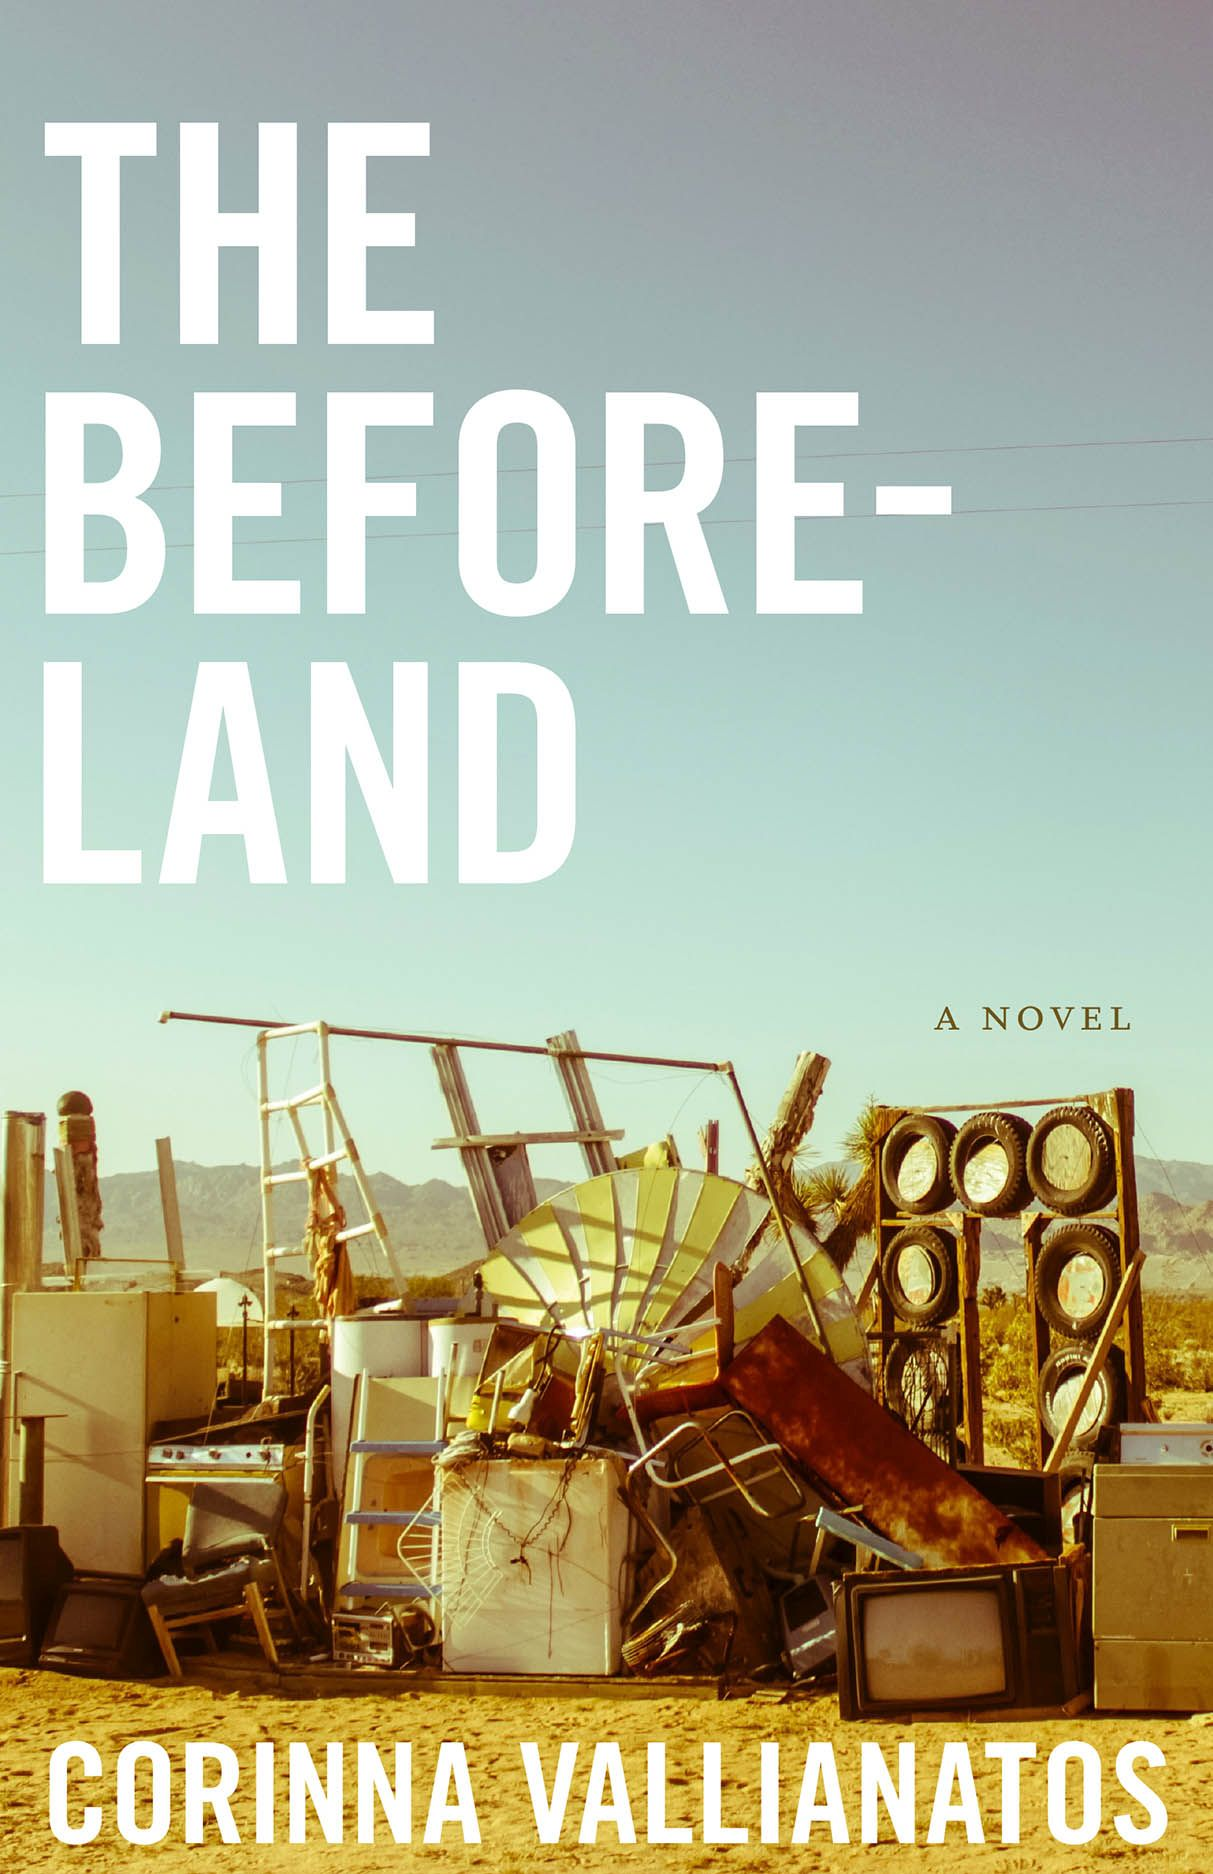 The Beforeland: A Novel